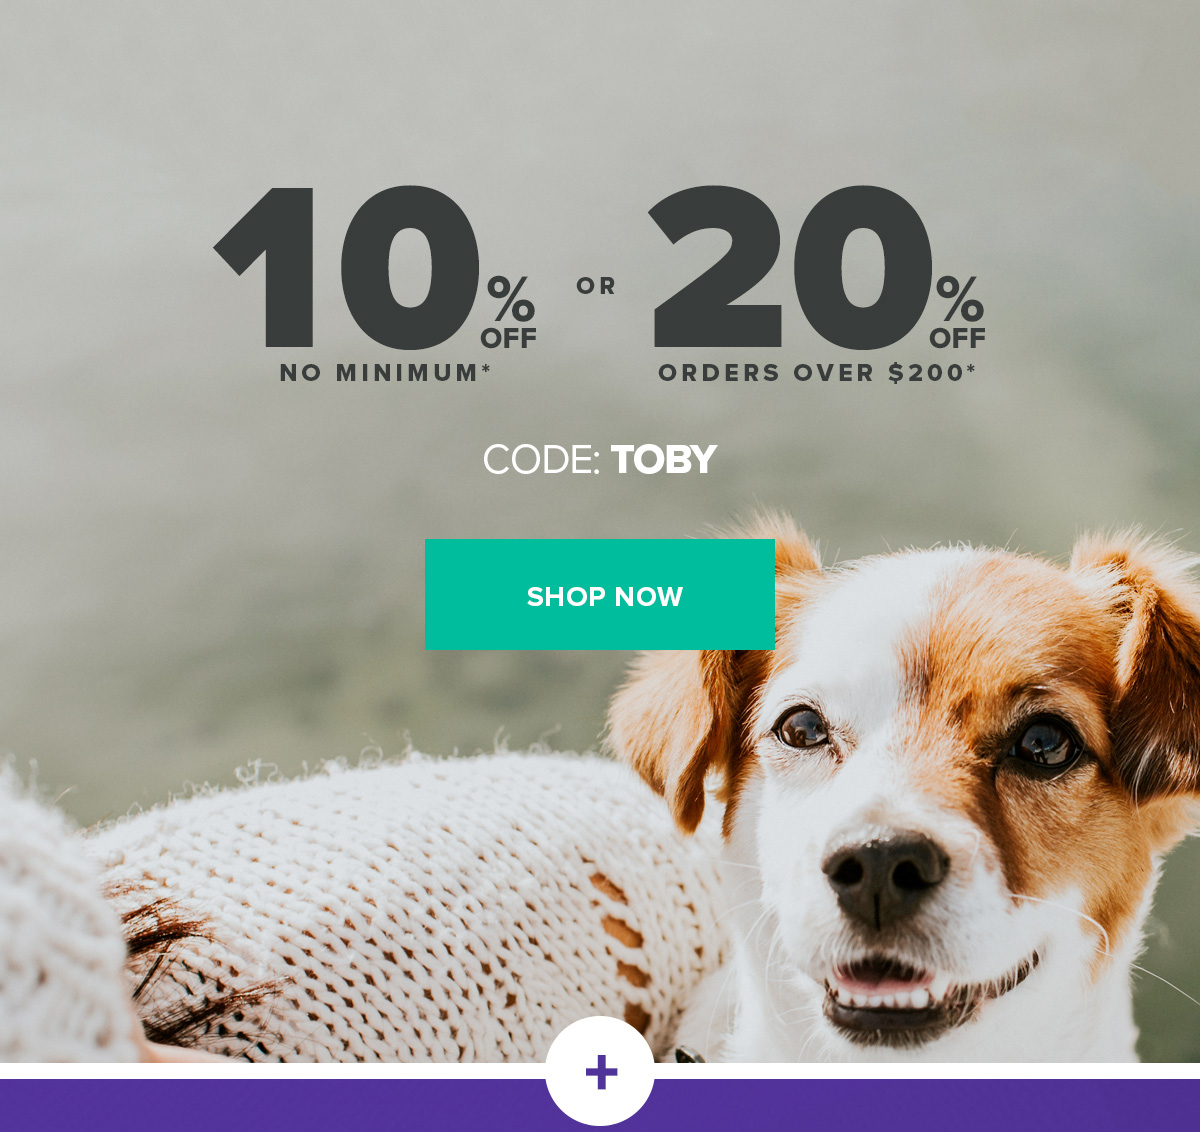 Making it Easy to Keep Your Dog Healthy | 10% off no minimum* or 20% off orders over $200* | code: TOBY | Shop Now